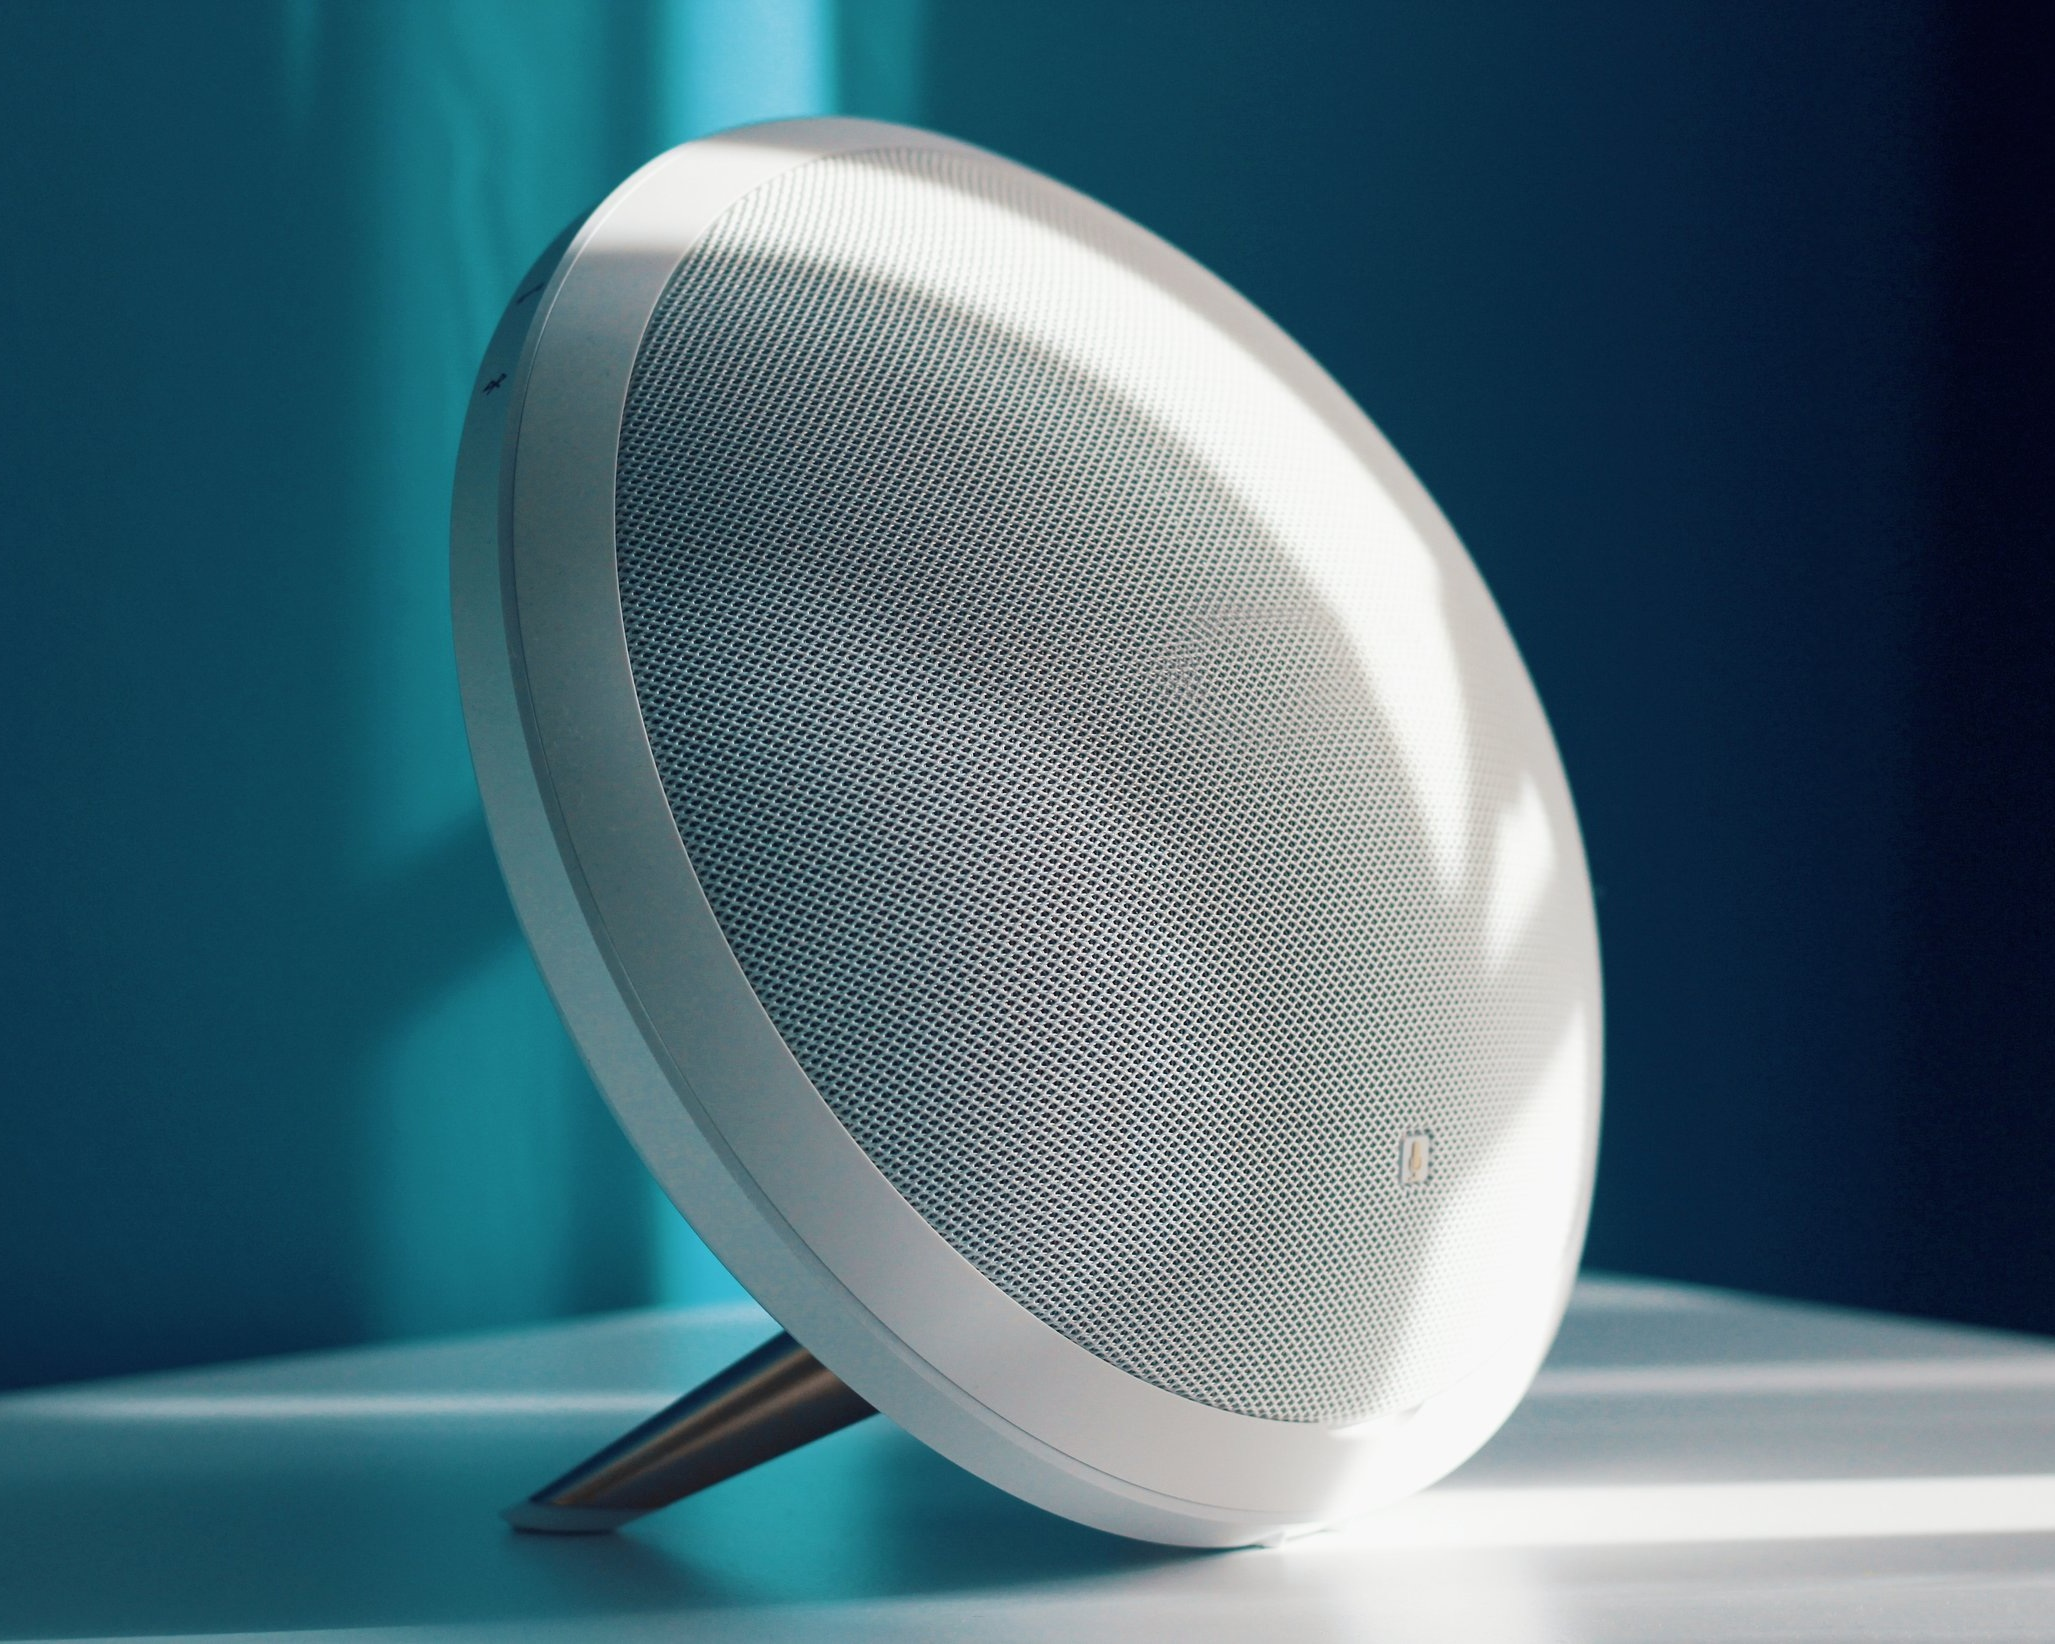 Other Smart Speakers - There are numerous smart speaker brands and styles on the market. And we can engrave, mark, etch, or print on almost all of them.